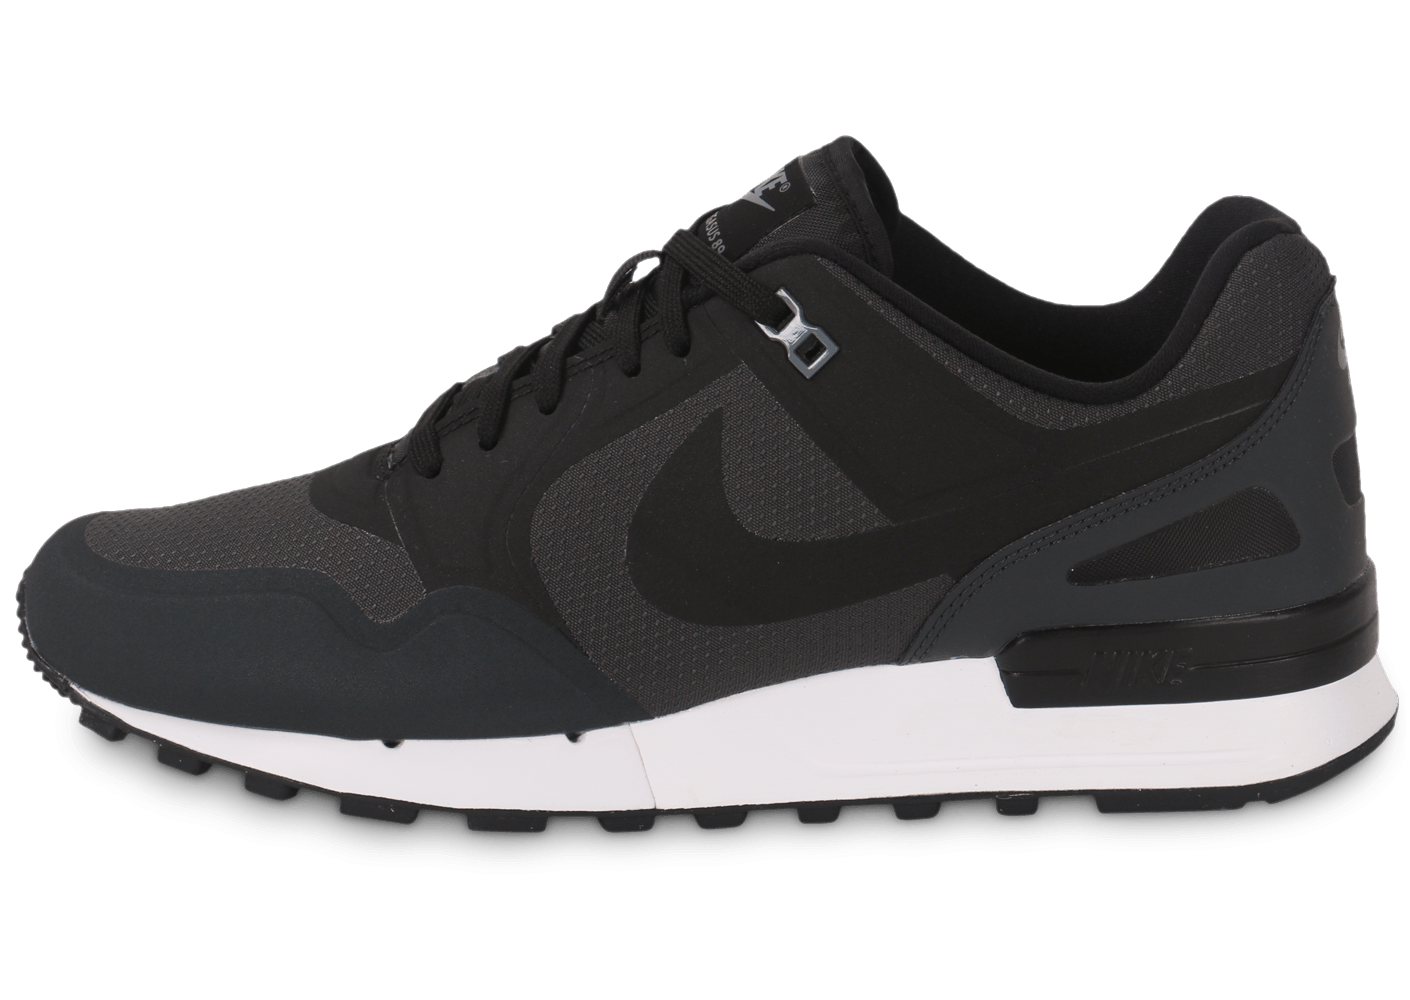 nike air pegasus 89 no sew grise chaussures homme chausport. Black Bedroom Furniture Sets. Home Design Ideas